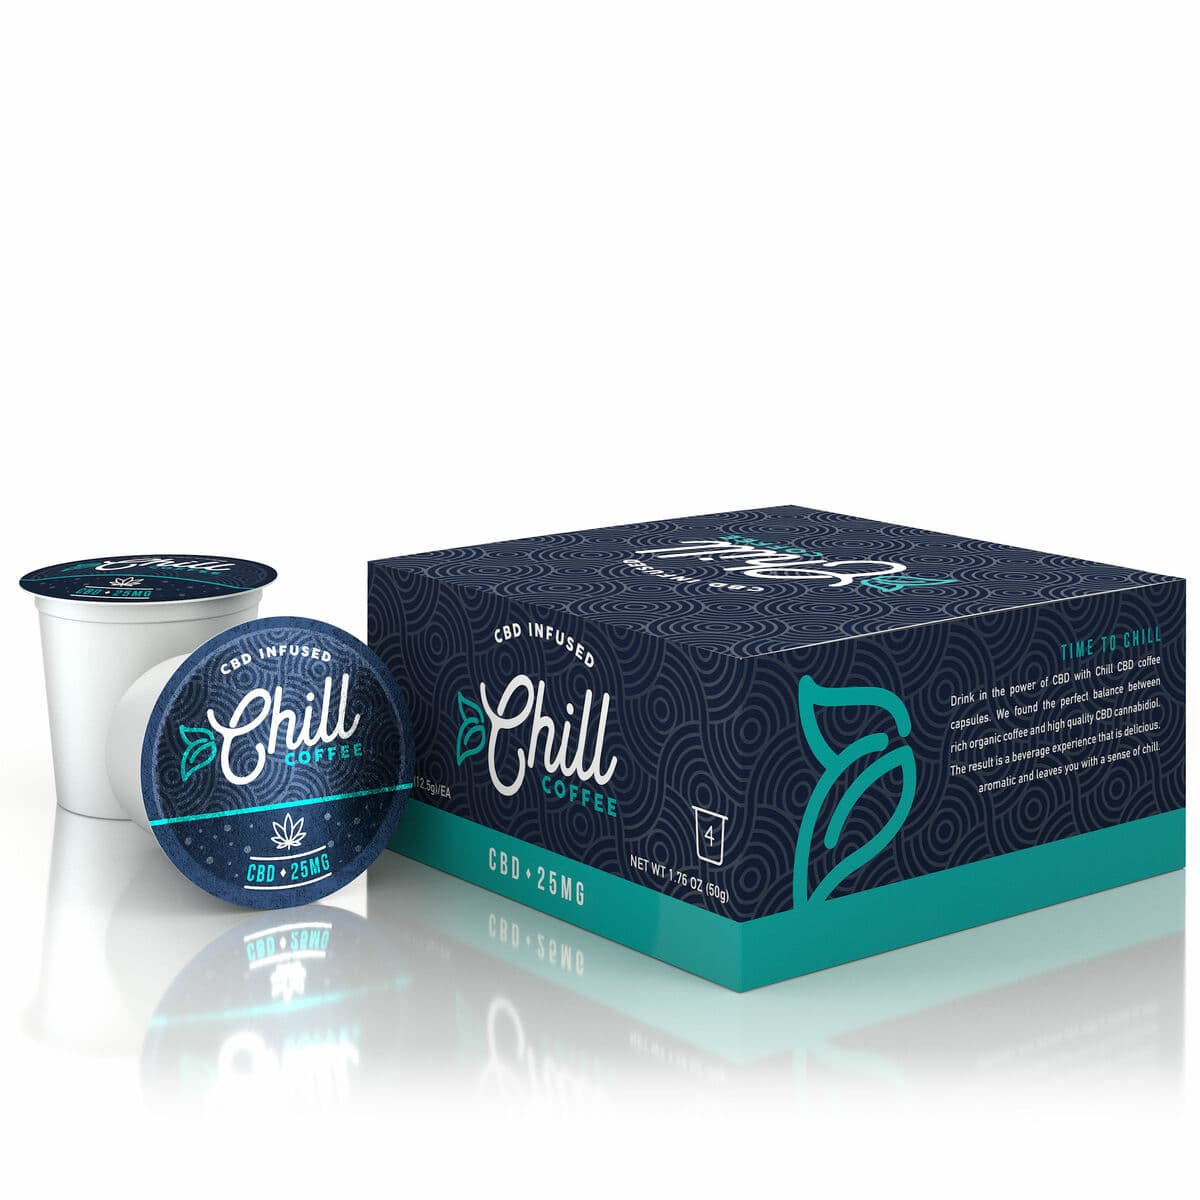 chill-cbd-coffee-4-pack-2